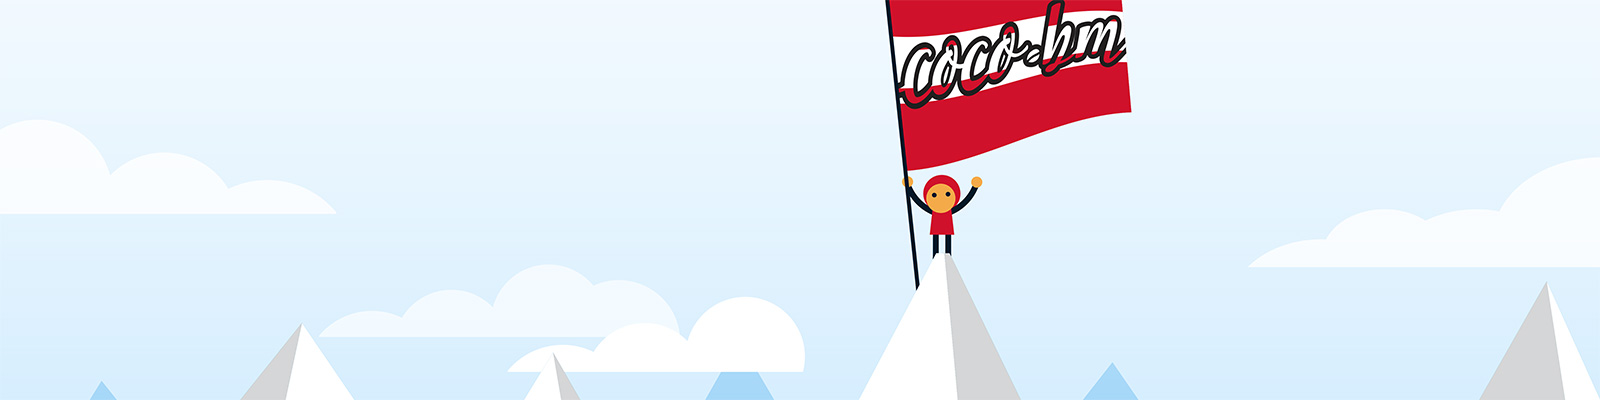 Austrian Mountain Illustration With Little Red-suited Man And A Coco.bm Flag